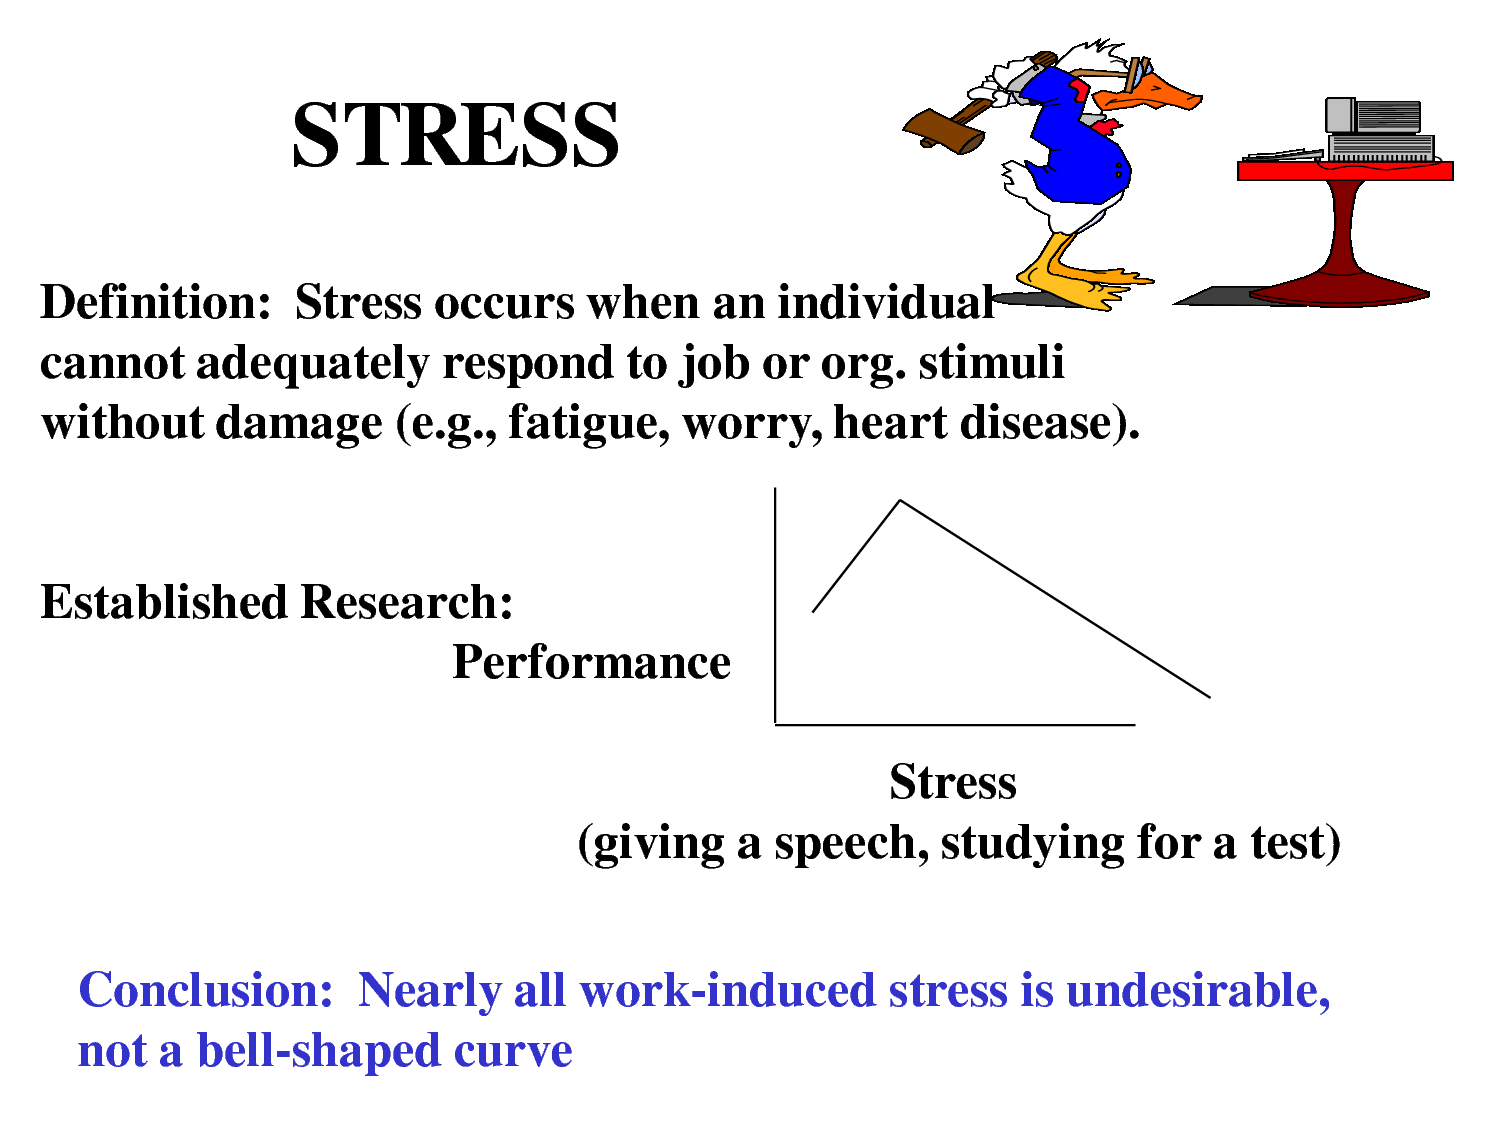 Medical Definition of Stress